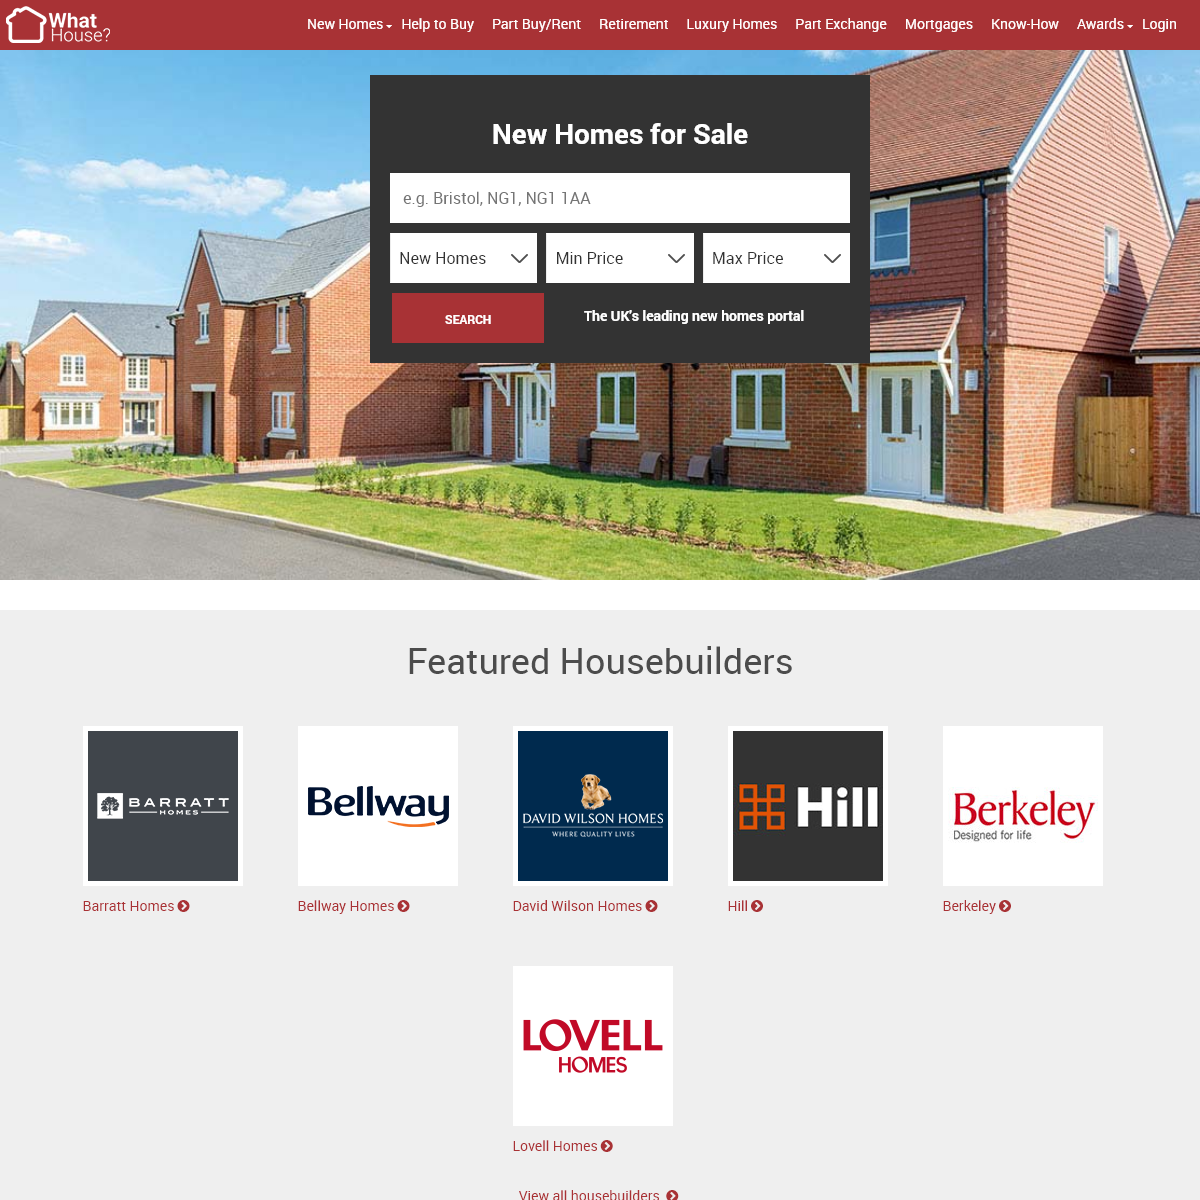 New Homes for Sale - Whathouse.com